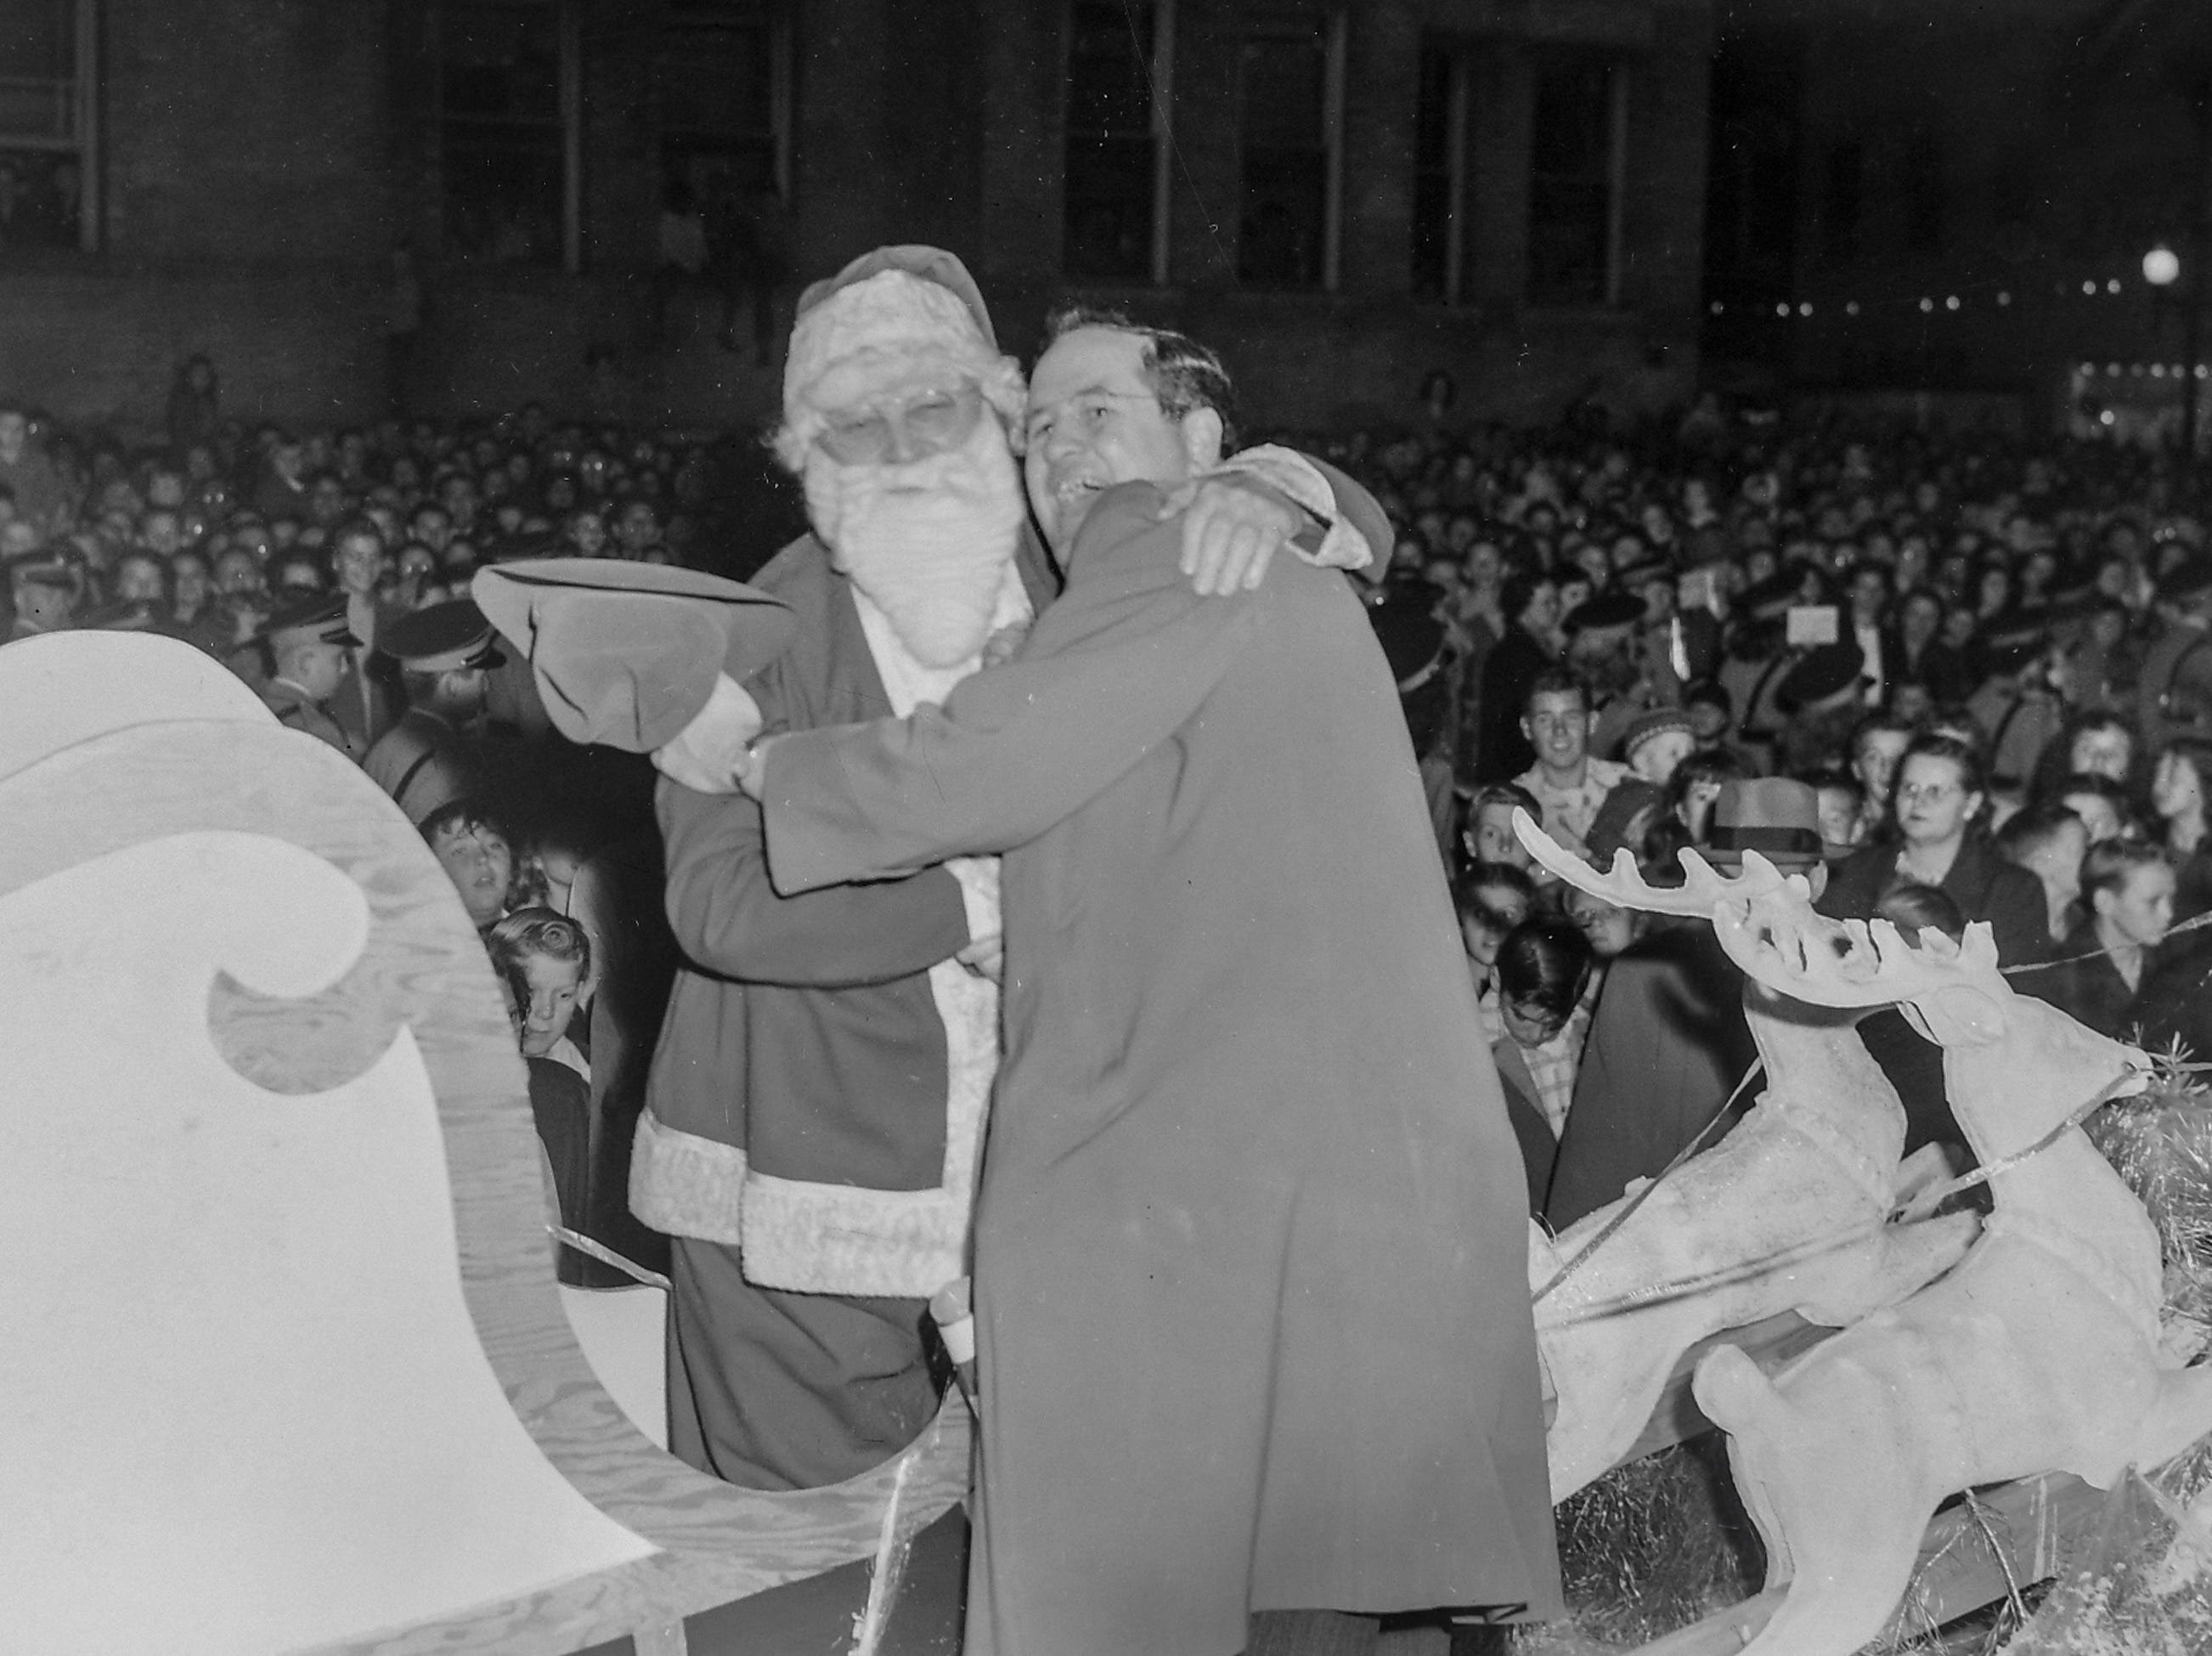 Santa Claus is greeted by a man at the Anderson Christmas Parade on December 1949 in downtown Anderson.